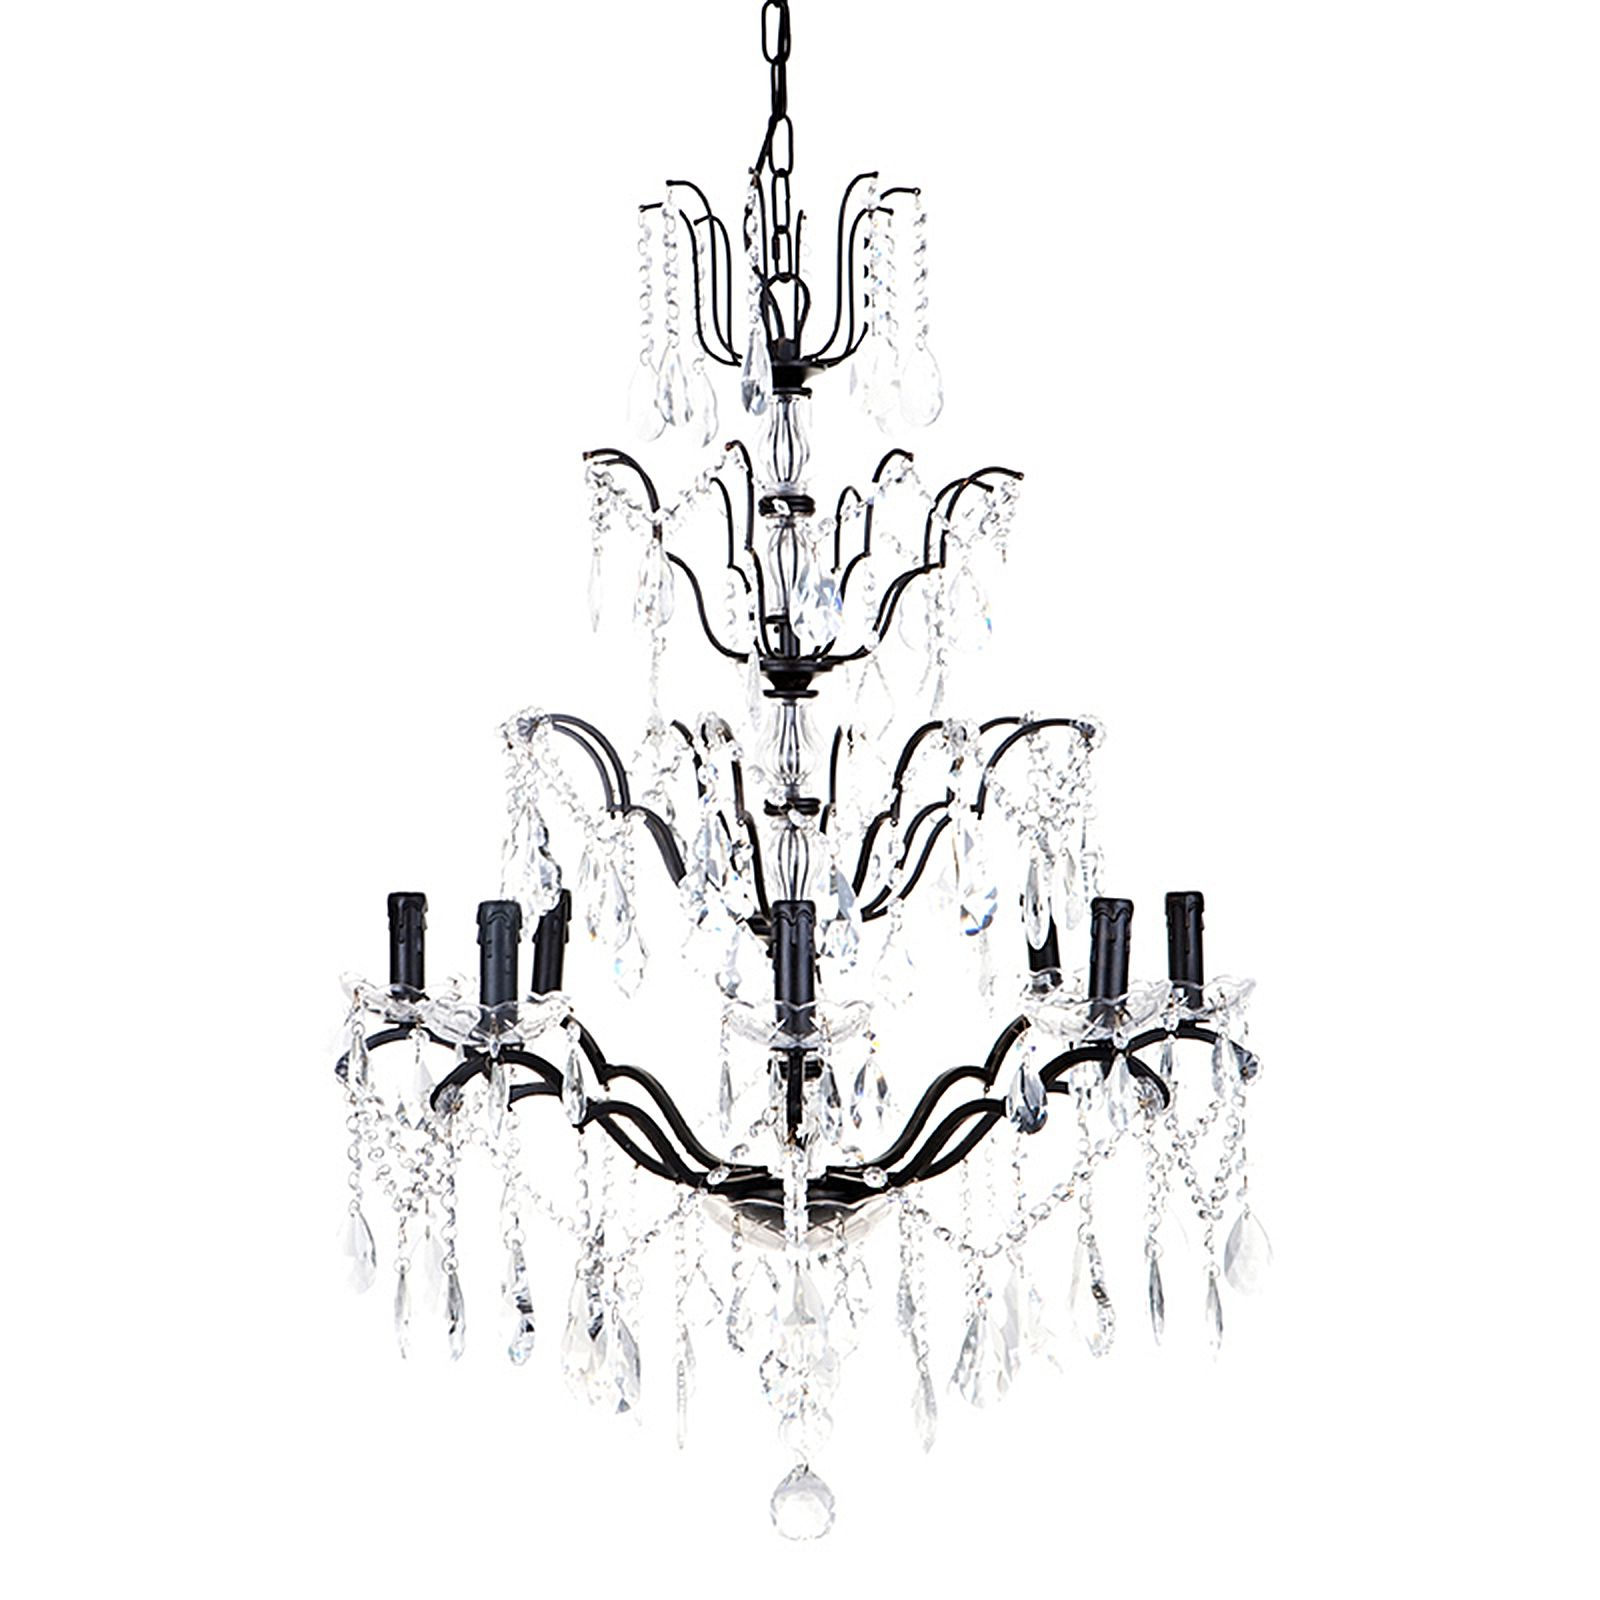 Widely Used Lyon 3 Light Unique / Statement Chandeliers For Lyon 8 Arm Chandelier (View 23 of 25)